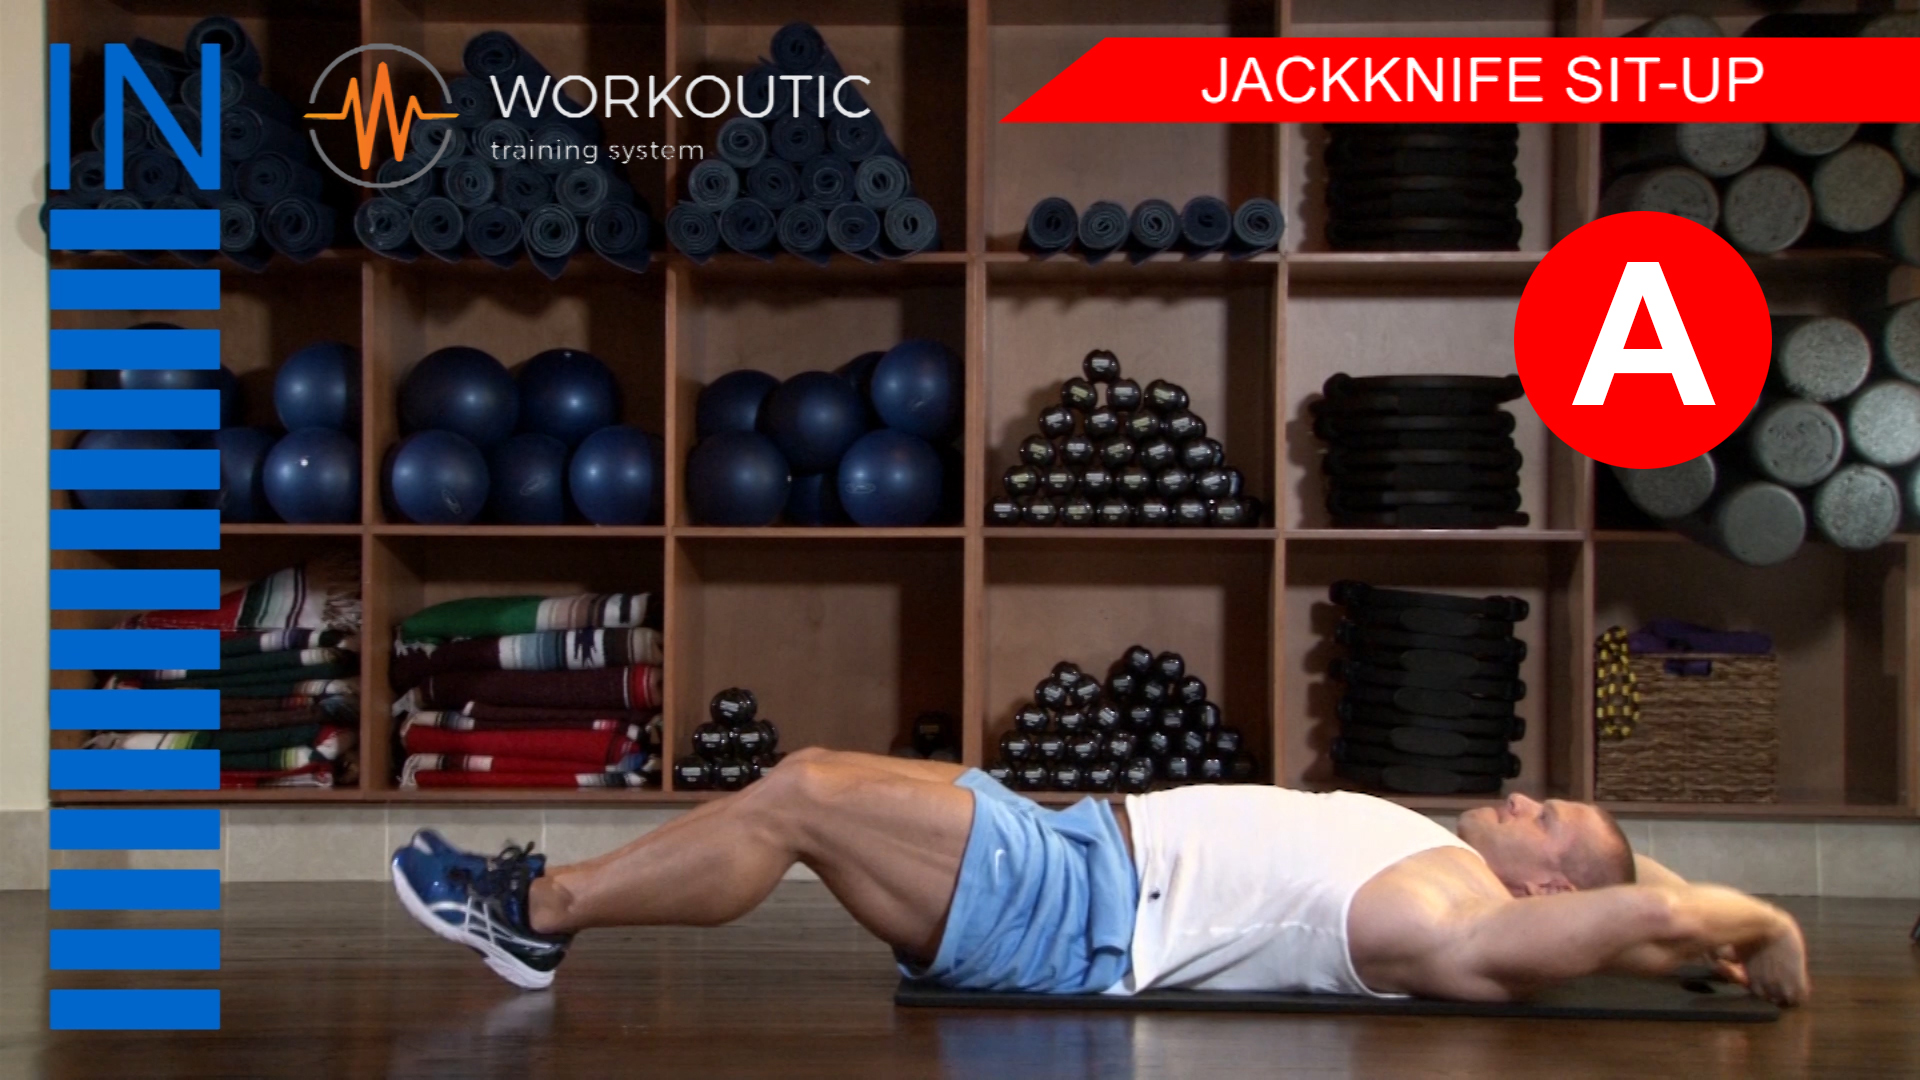 Abs Exercises - Workutic - 6 pack special - Jackknife Sit-Up Inhale